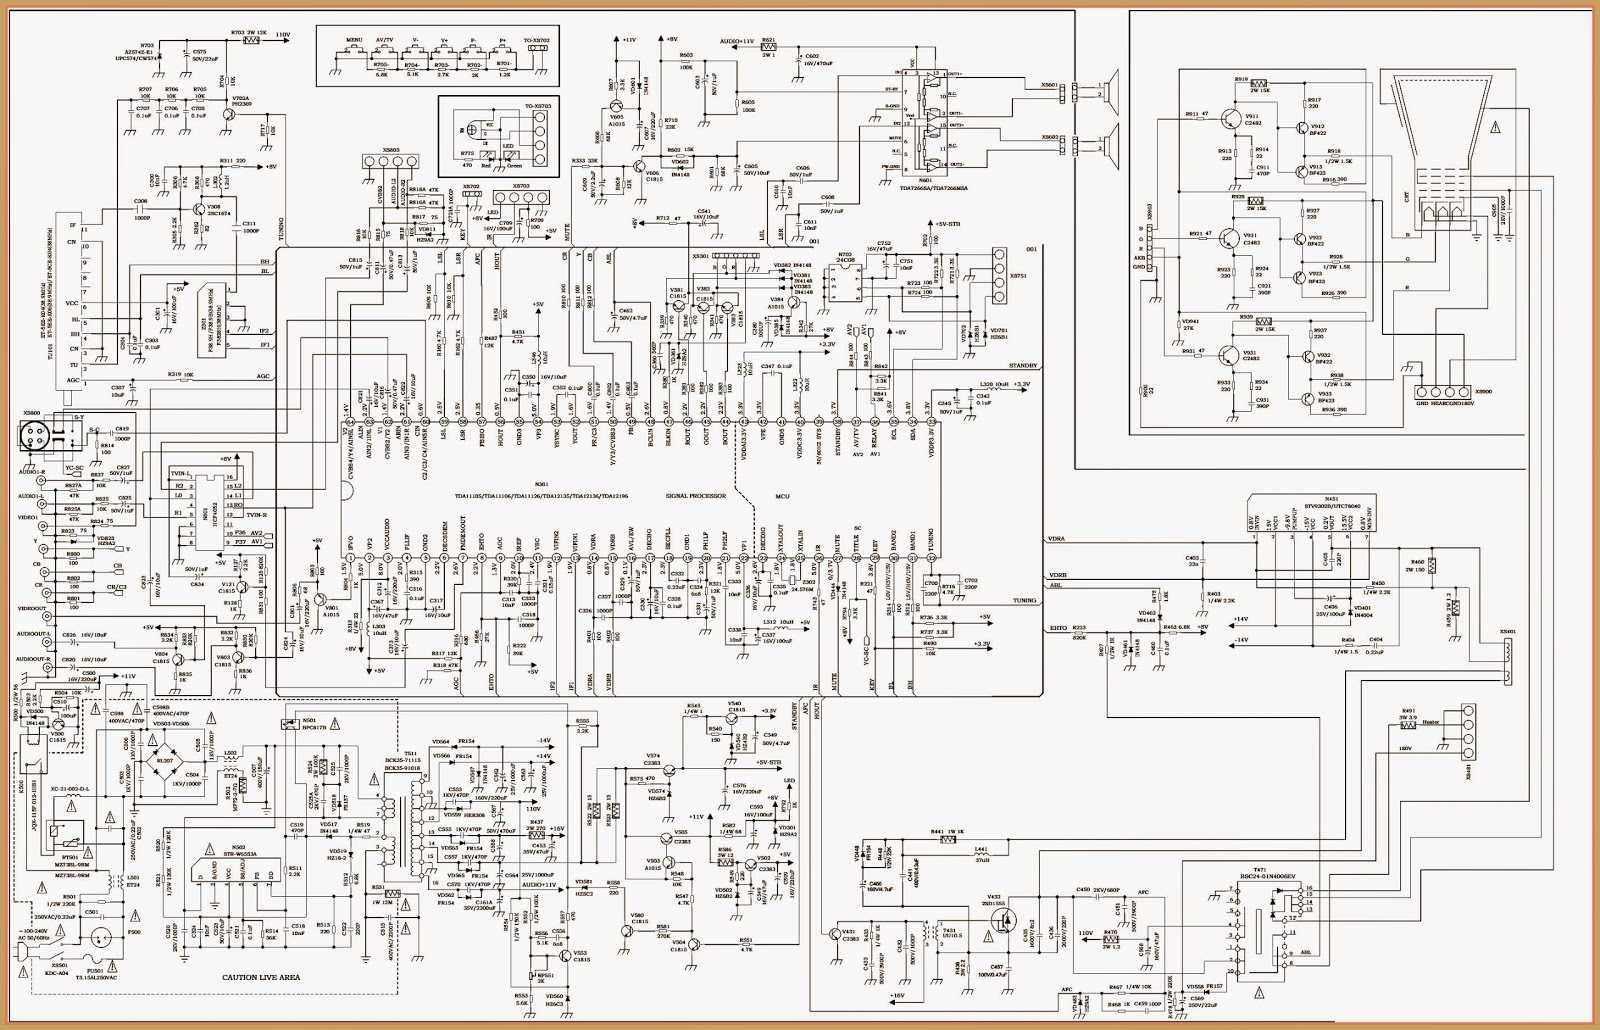 Color Tv Kit Circuit Diagram Full Tda 11106 Stv9302 Based Pc Power Supply Wiring Pinout 24 Pin Schematic Click On The To Magnify